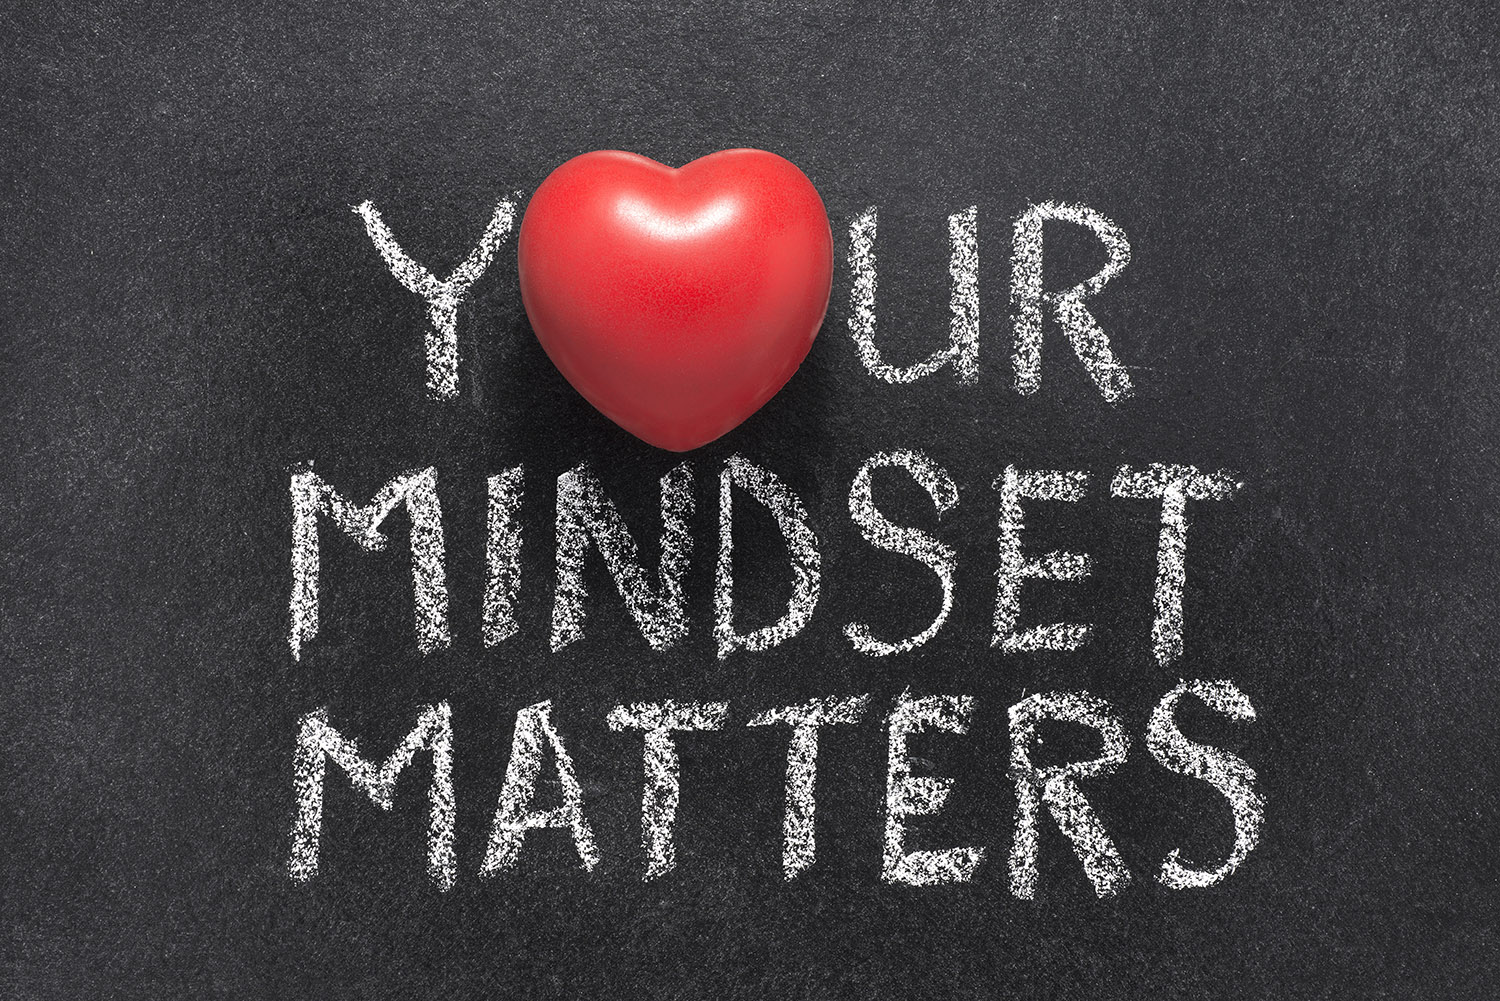 your mindset matters